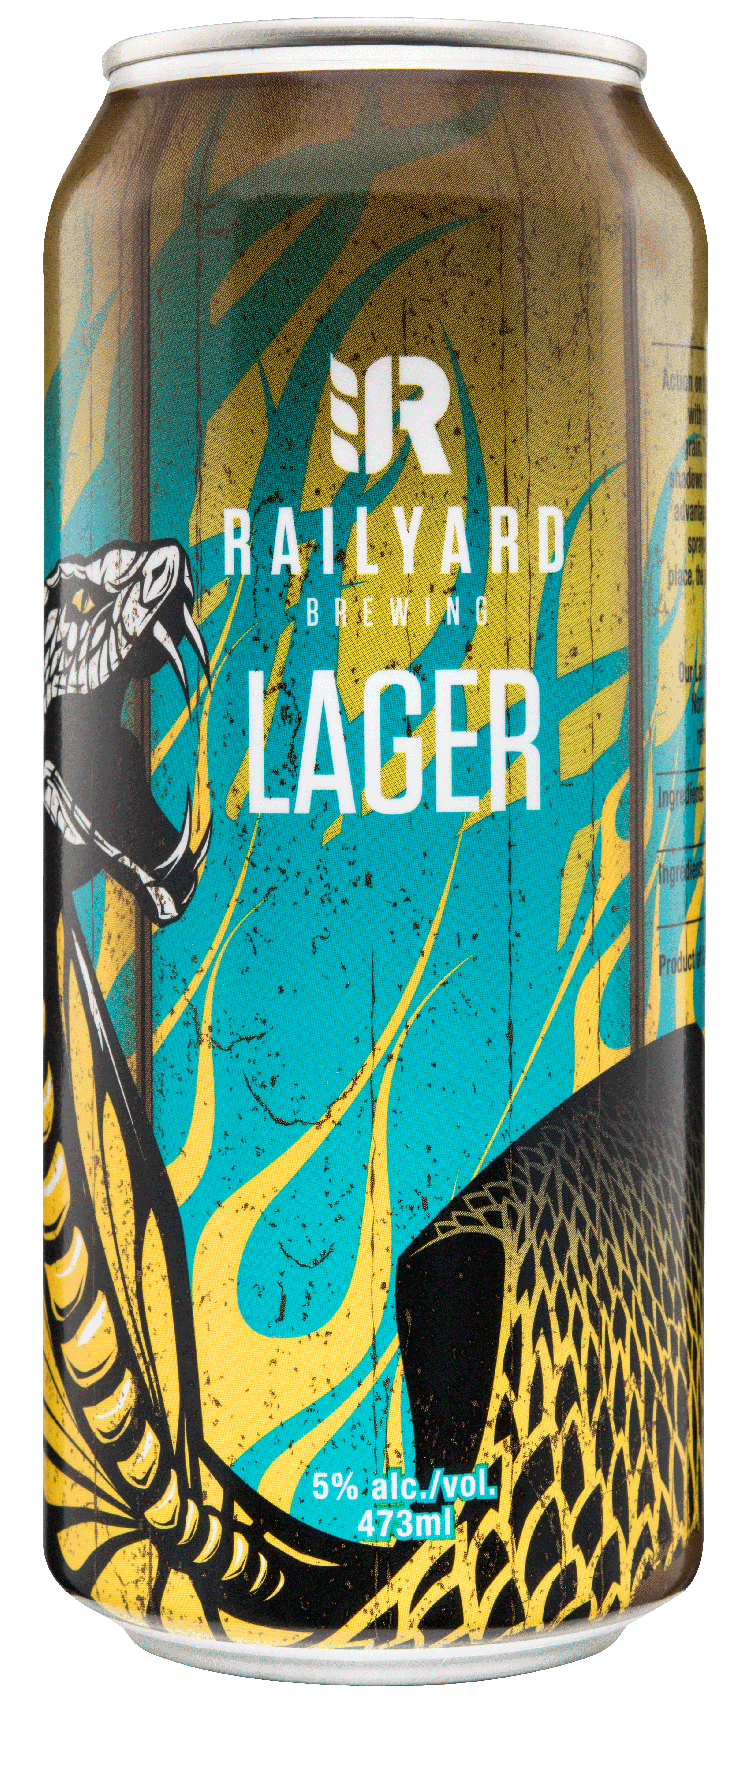 RAILYARD LAGER   Fusing the finest Alberta Malt & classic European hops the Railyard Lager brings down the rail-crossing gates when it comes to quenching your thirst. Graham cracker sweetness, balanced with a delicate hop herbaceous finish, look no further than this being the last station of your day.